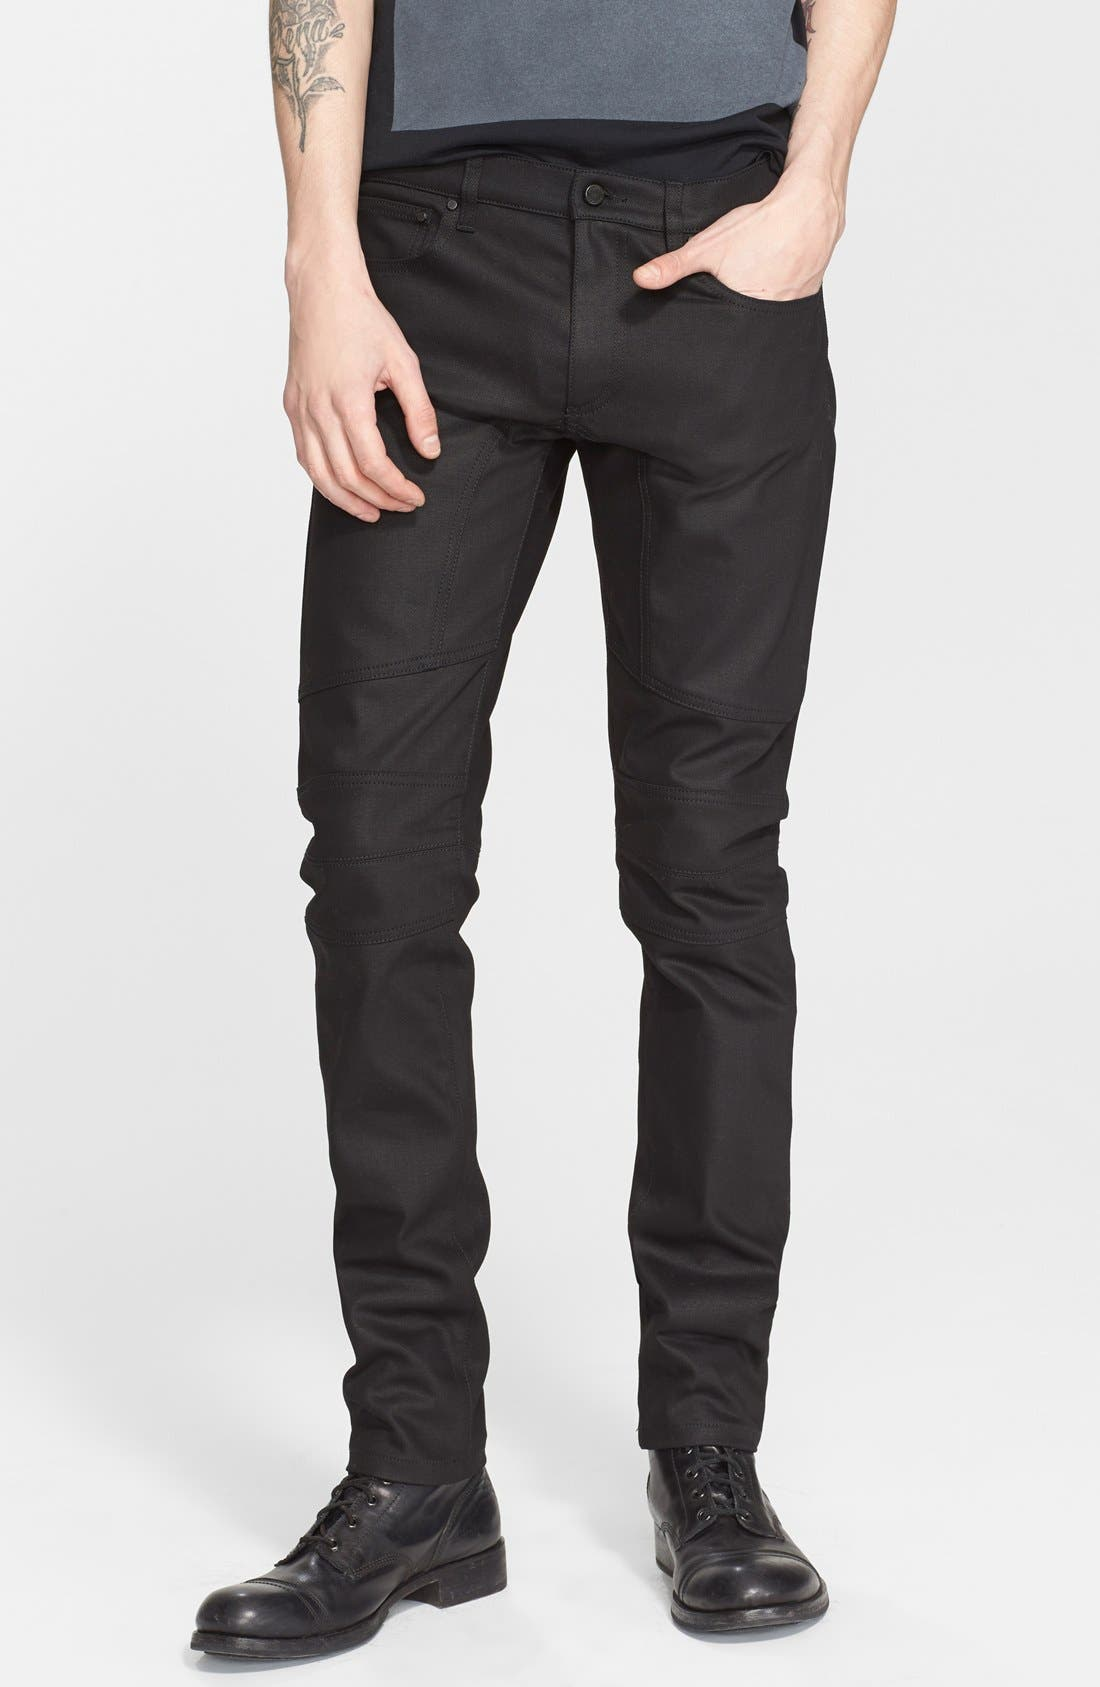 BELSTAFF 'Elmbridge' Slim Fit Moto Jeans